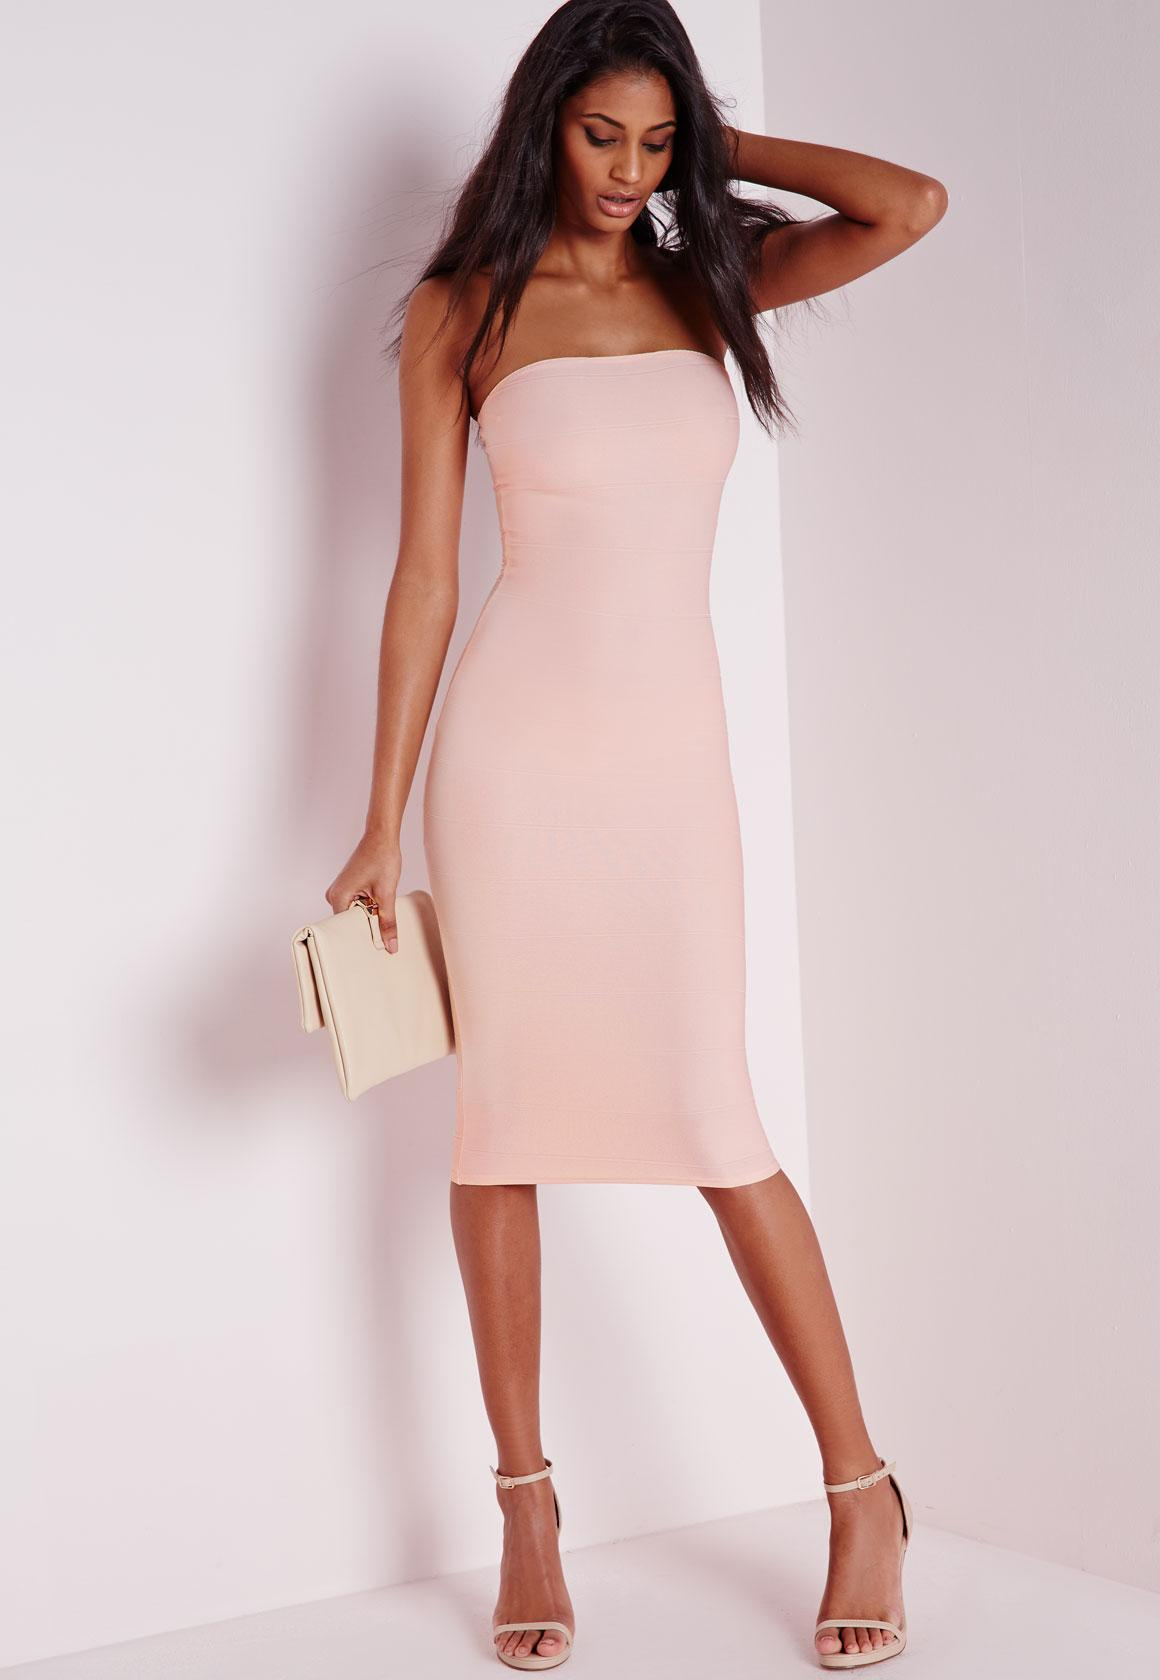 Strapless Bandage Bodycon Dress Nude - Dresses - Bodycon Dresses ...